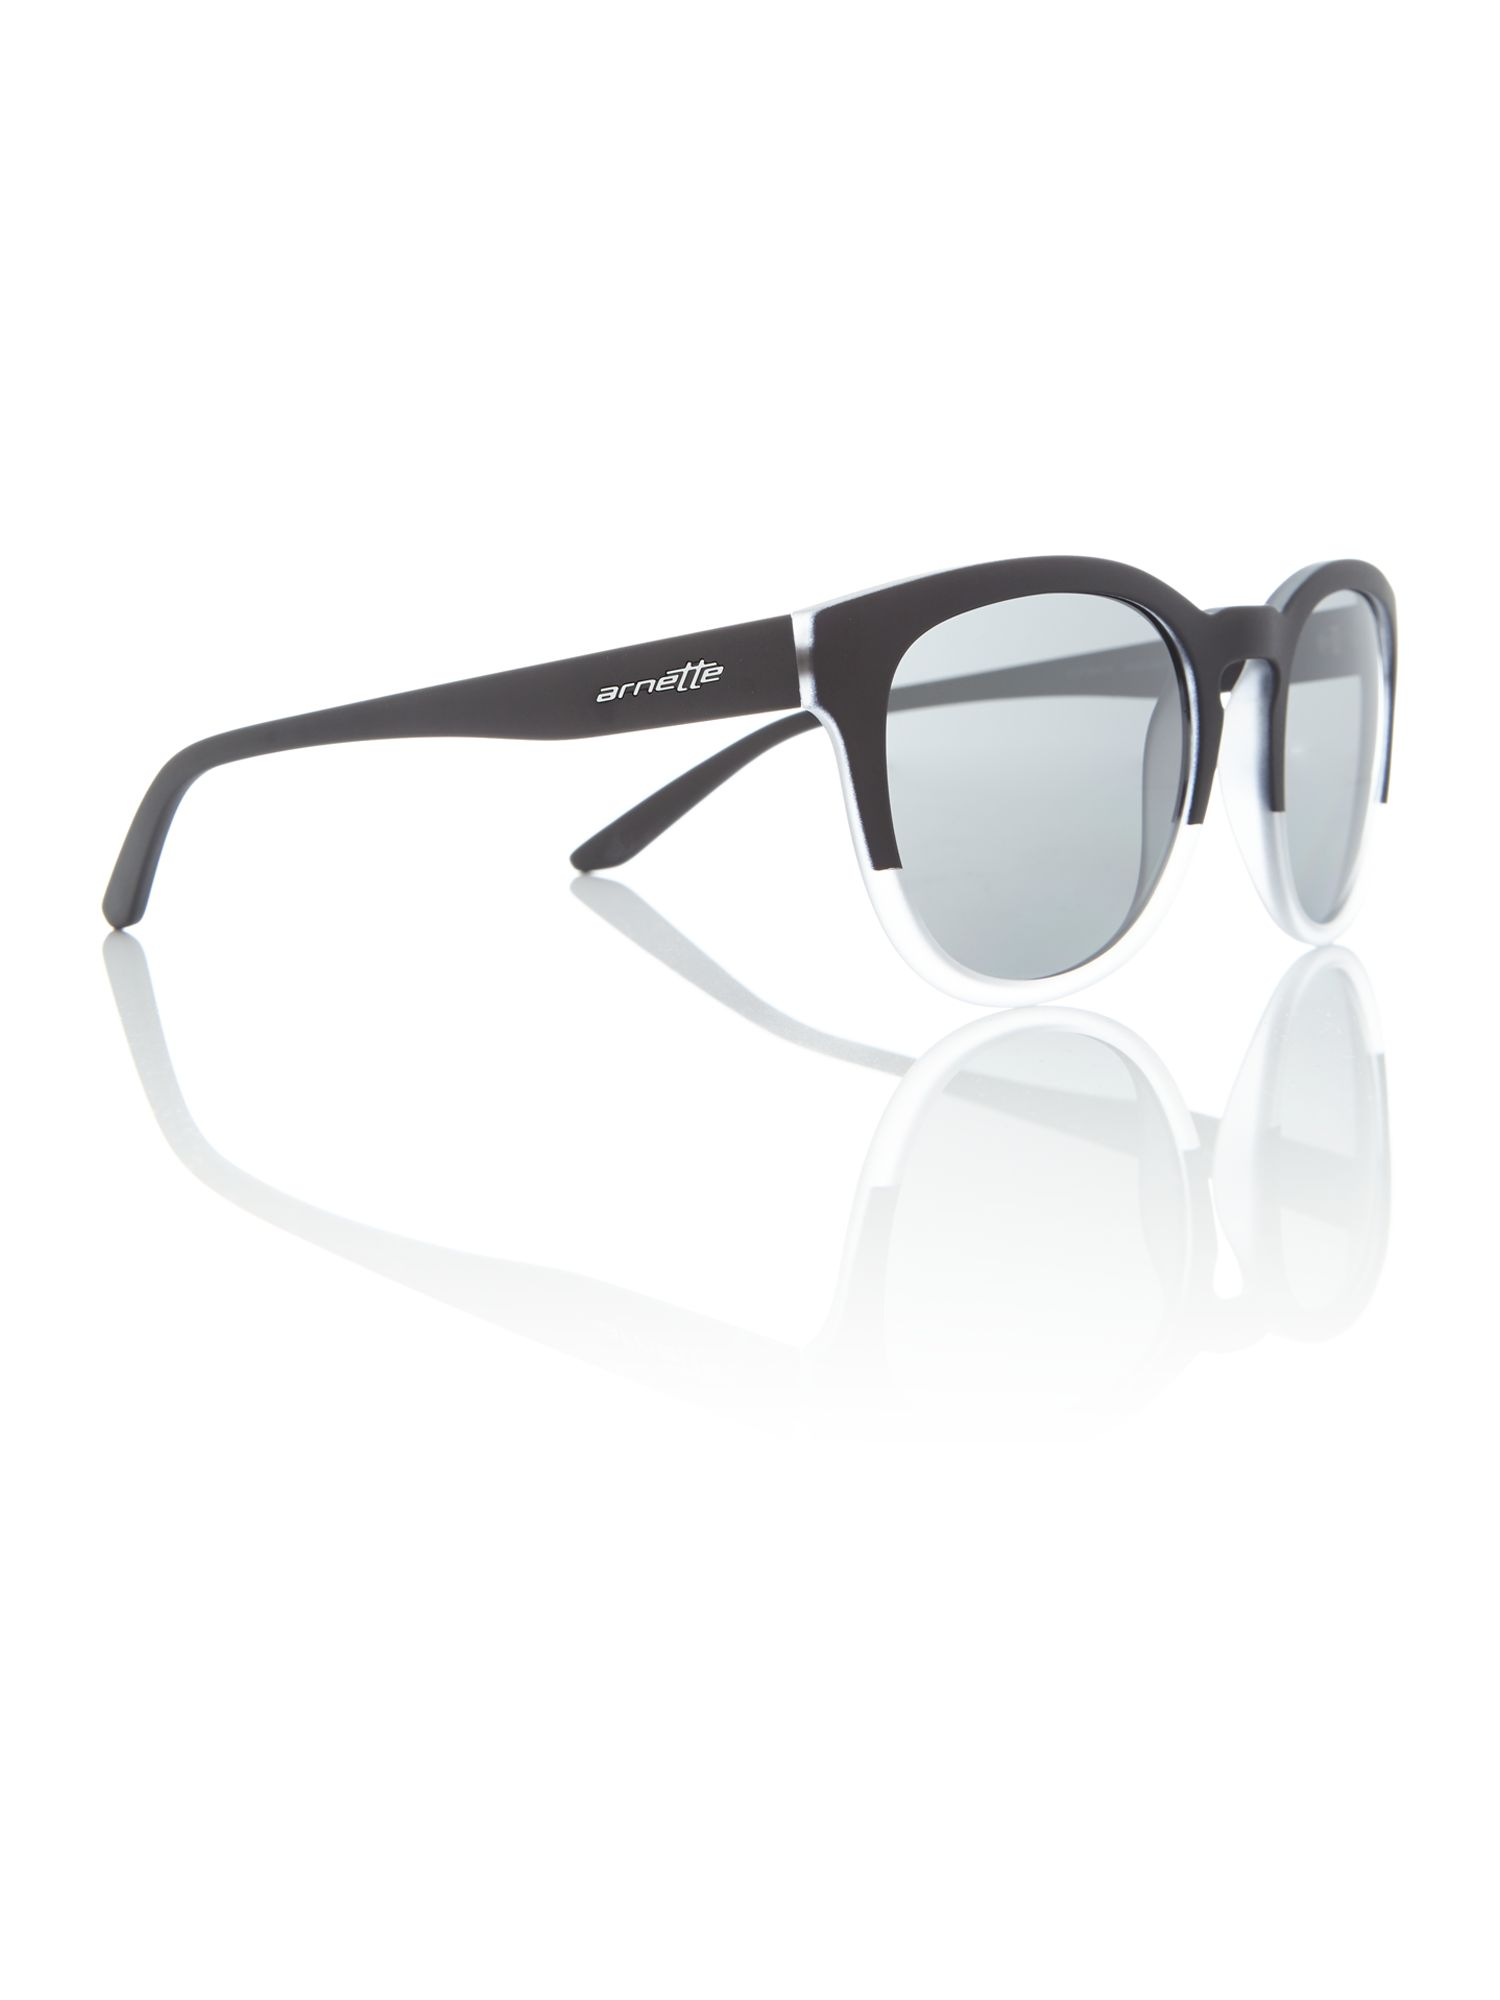 Arnette Black phantos AN4230 sunglasses